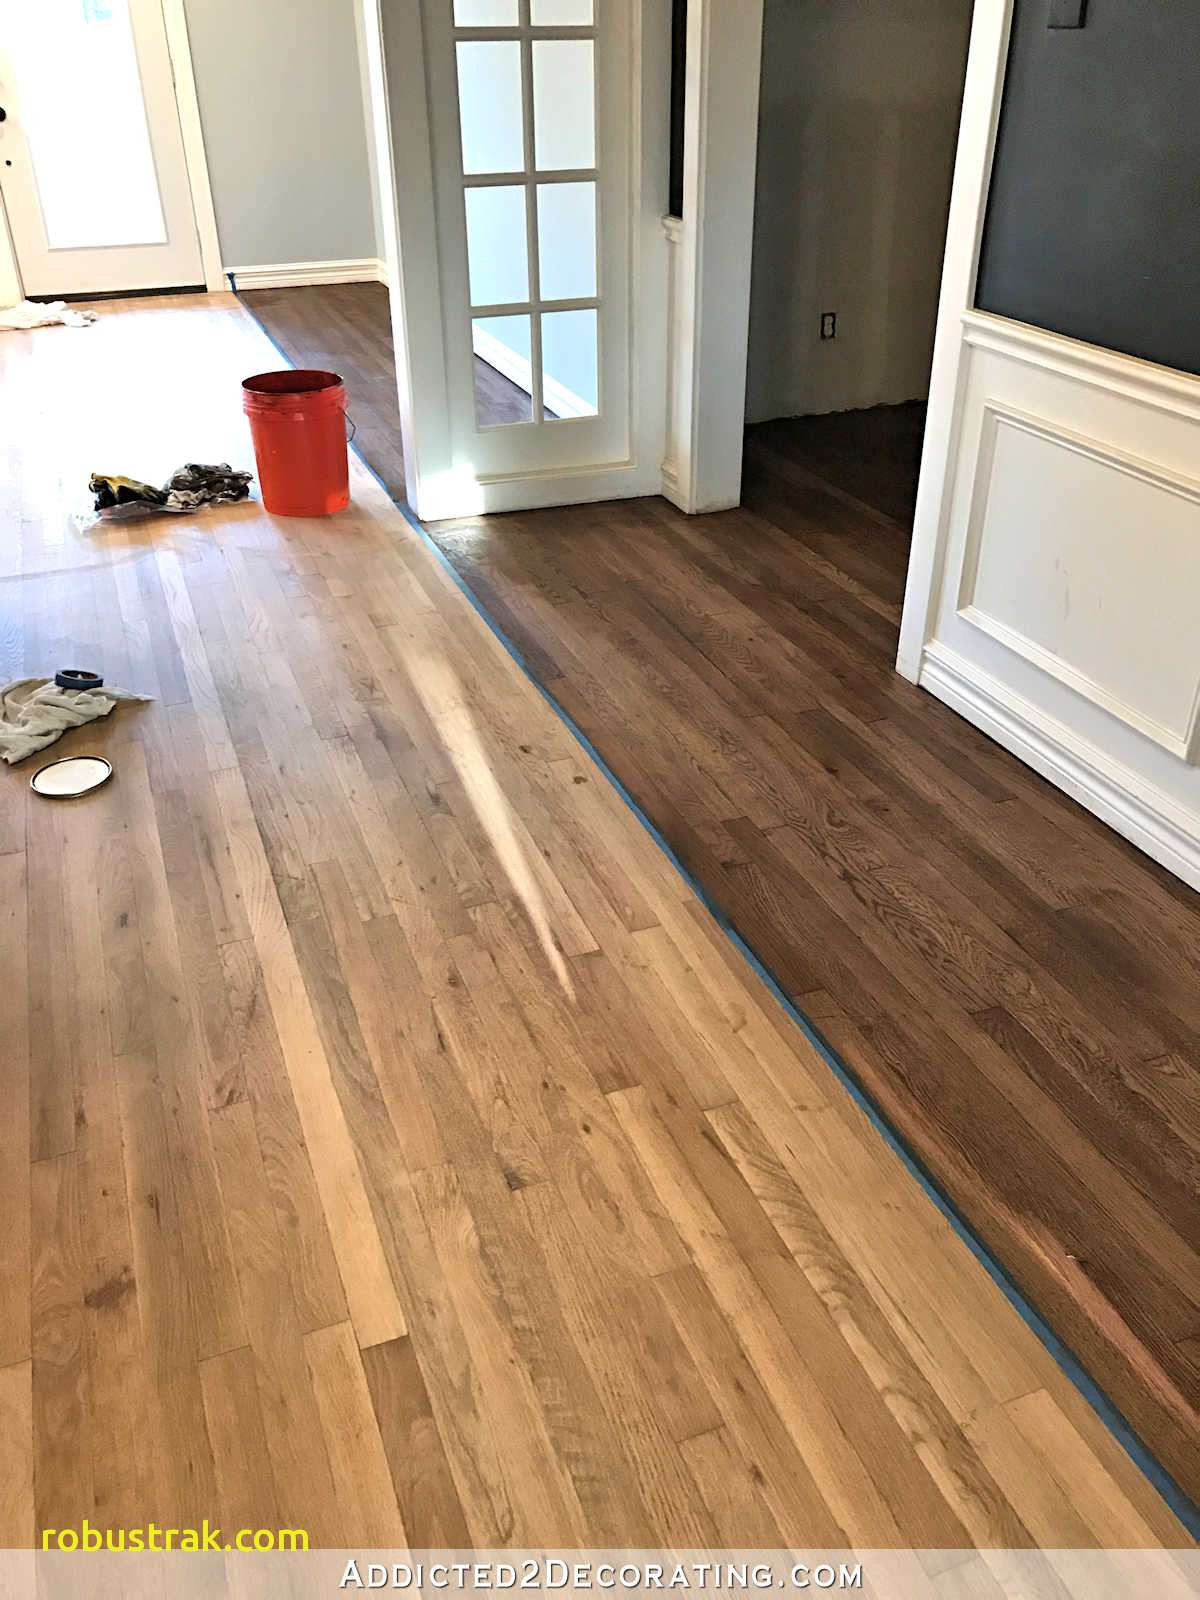 Hardwood Floor Transition From Room